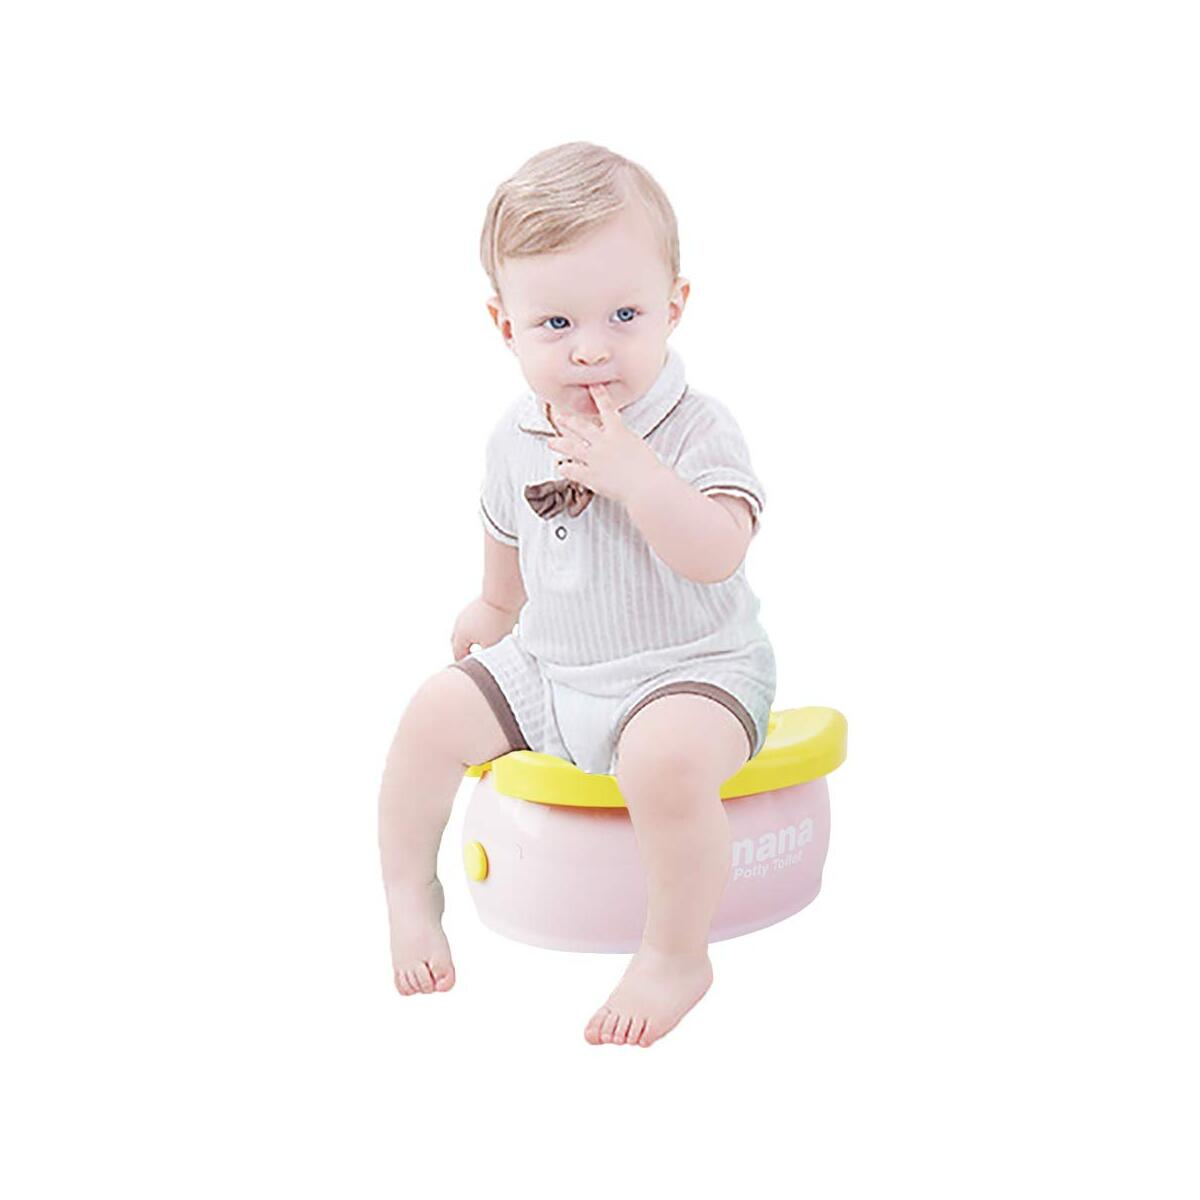 WISHTIME Potty Training Seat - Cute Banana Toilet Seat Trainer Portable Foldable Potty for Kids Boys Girls Children Toddlers (Pink)